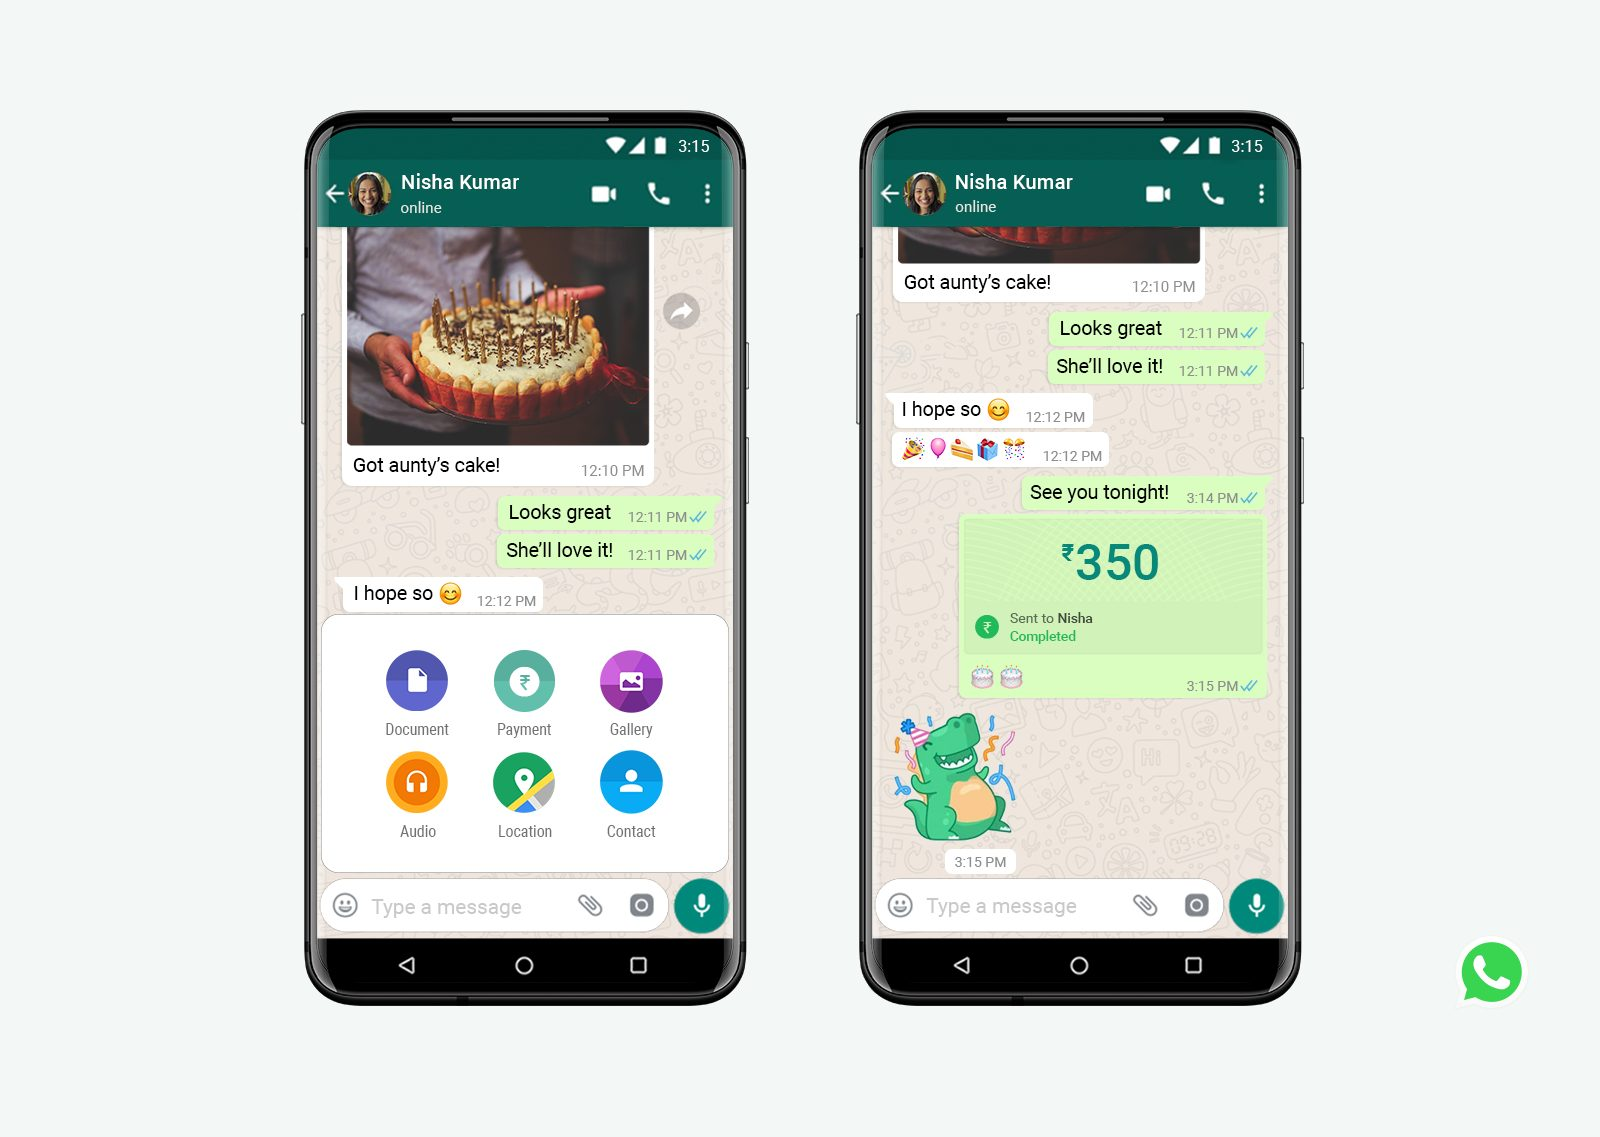 Whatsapp Payment Service in India